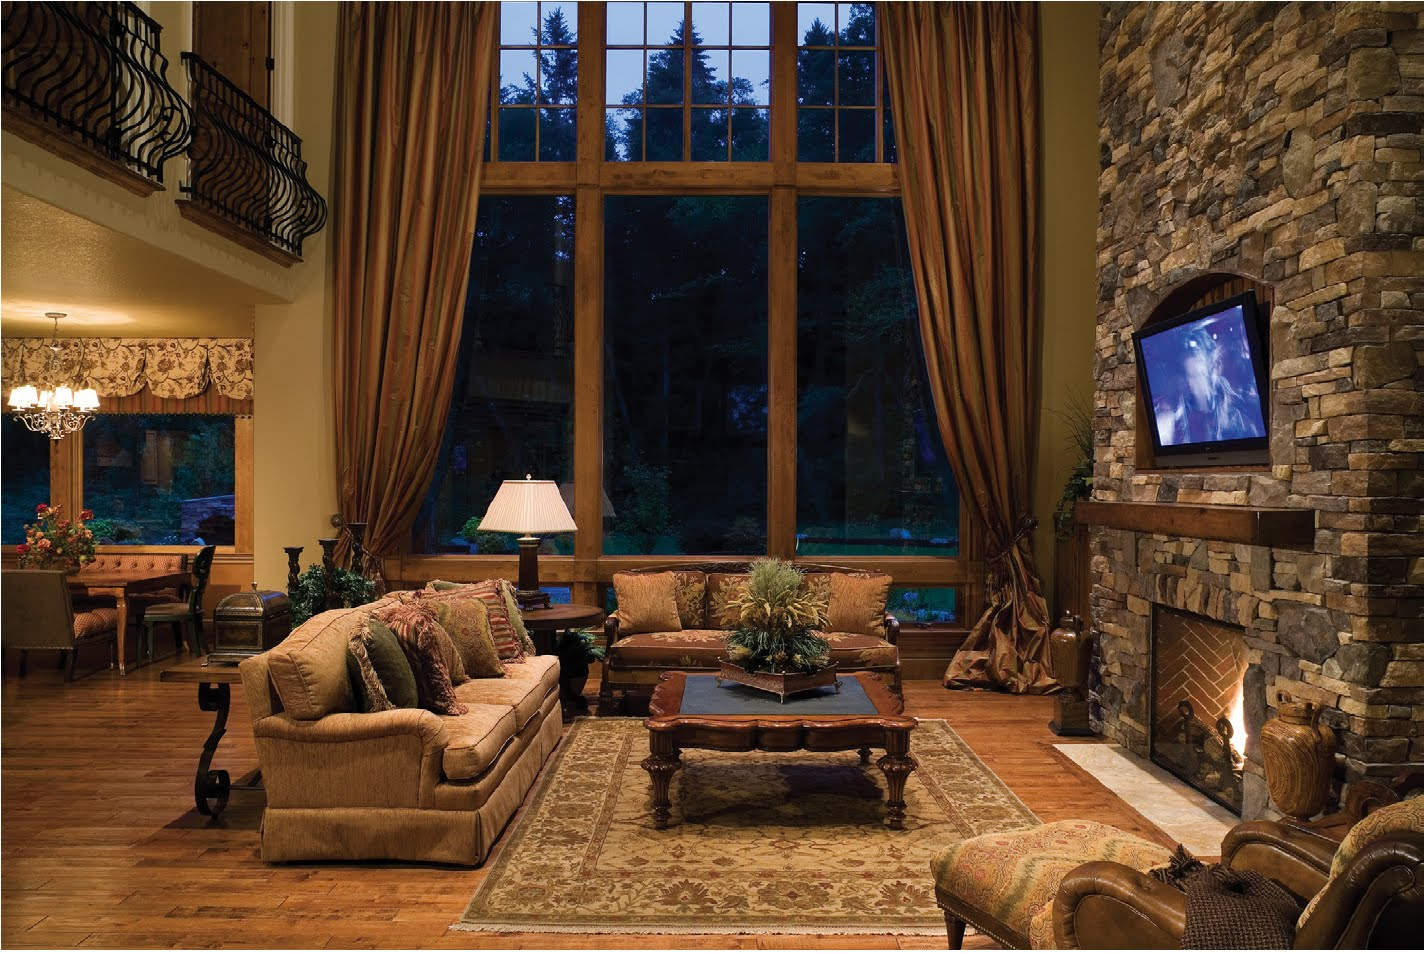 Wonderful Rustic Living Room With Classic Sofa With Large Glass Windows For Modern Nuance (Image 10 of 10)